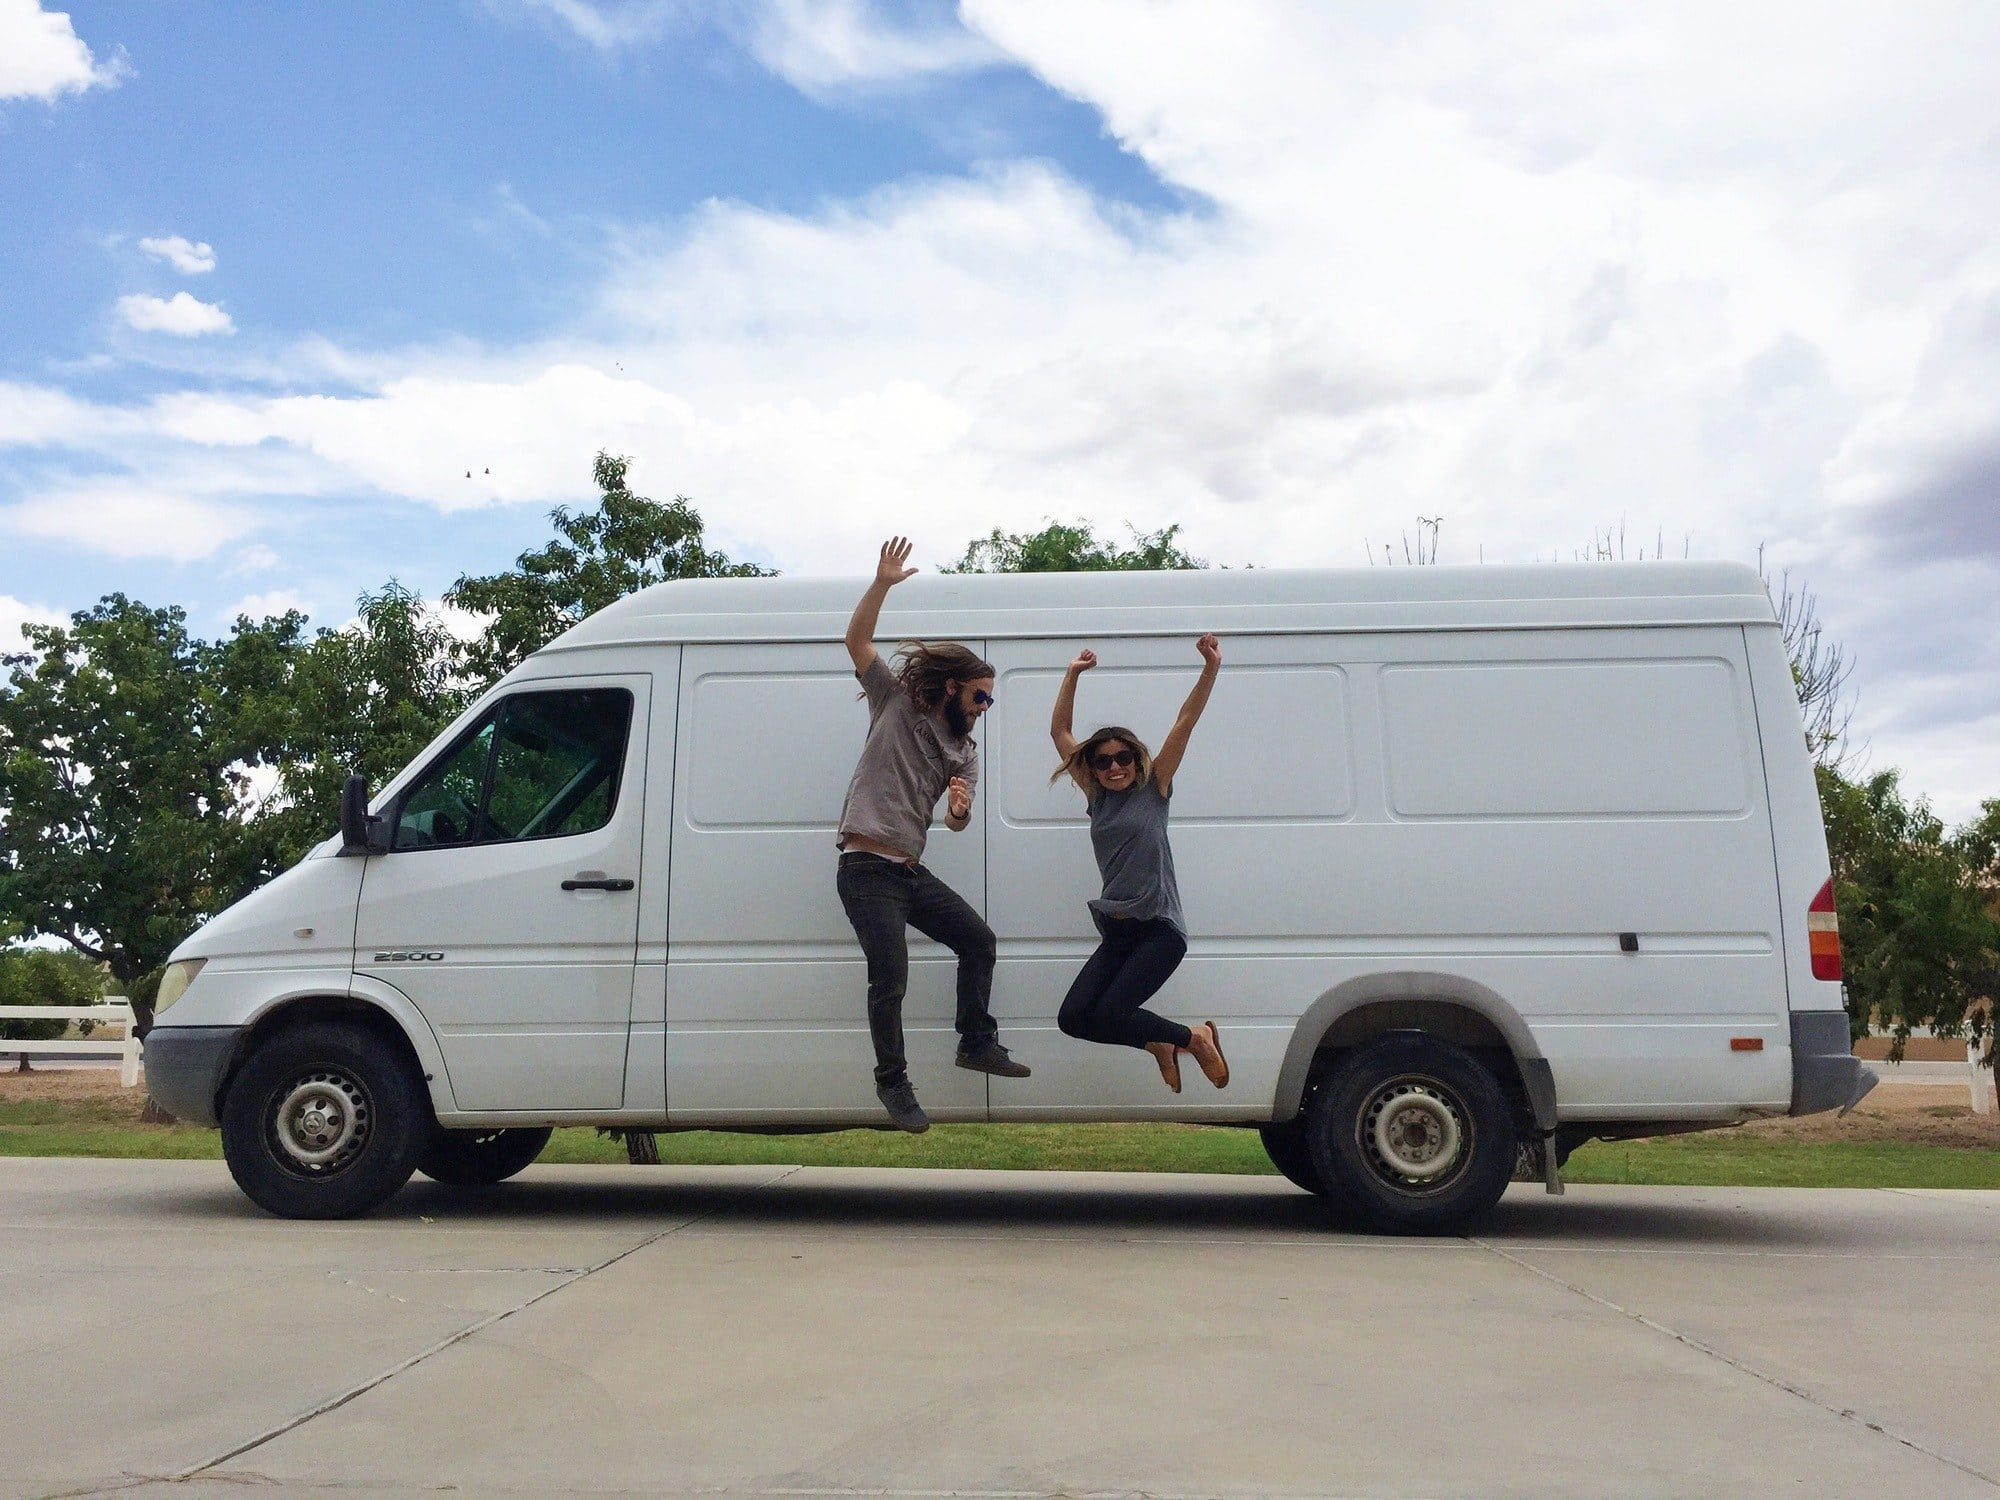 Learn about Sprinter Van Life with a baby, tips for a DIY Sprinter Van conversion & making money on in the road in this interview with Our Home On Wheels.